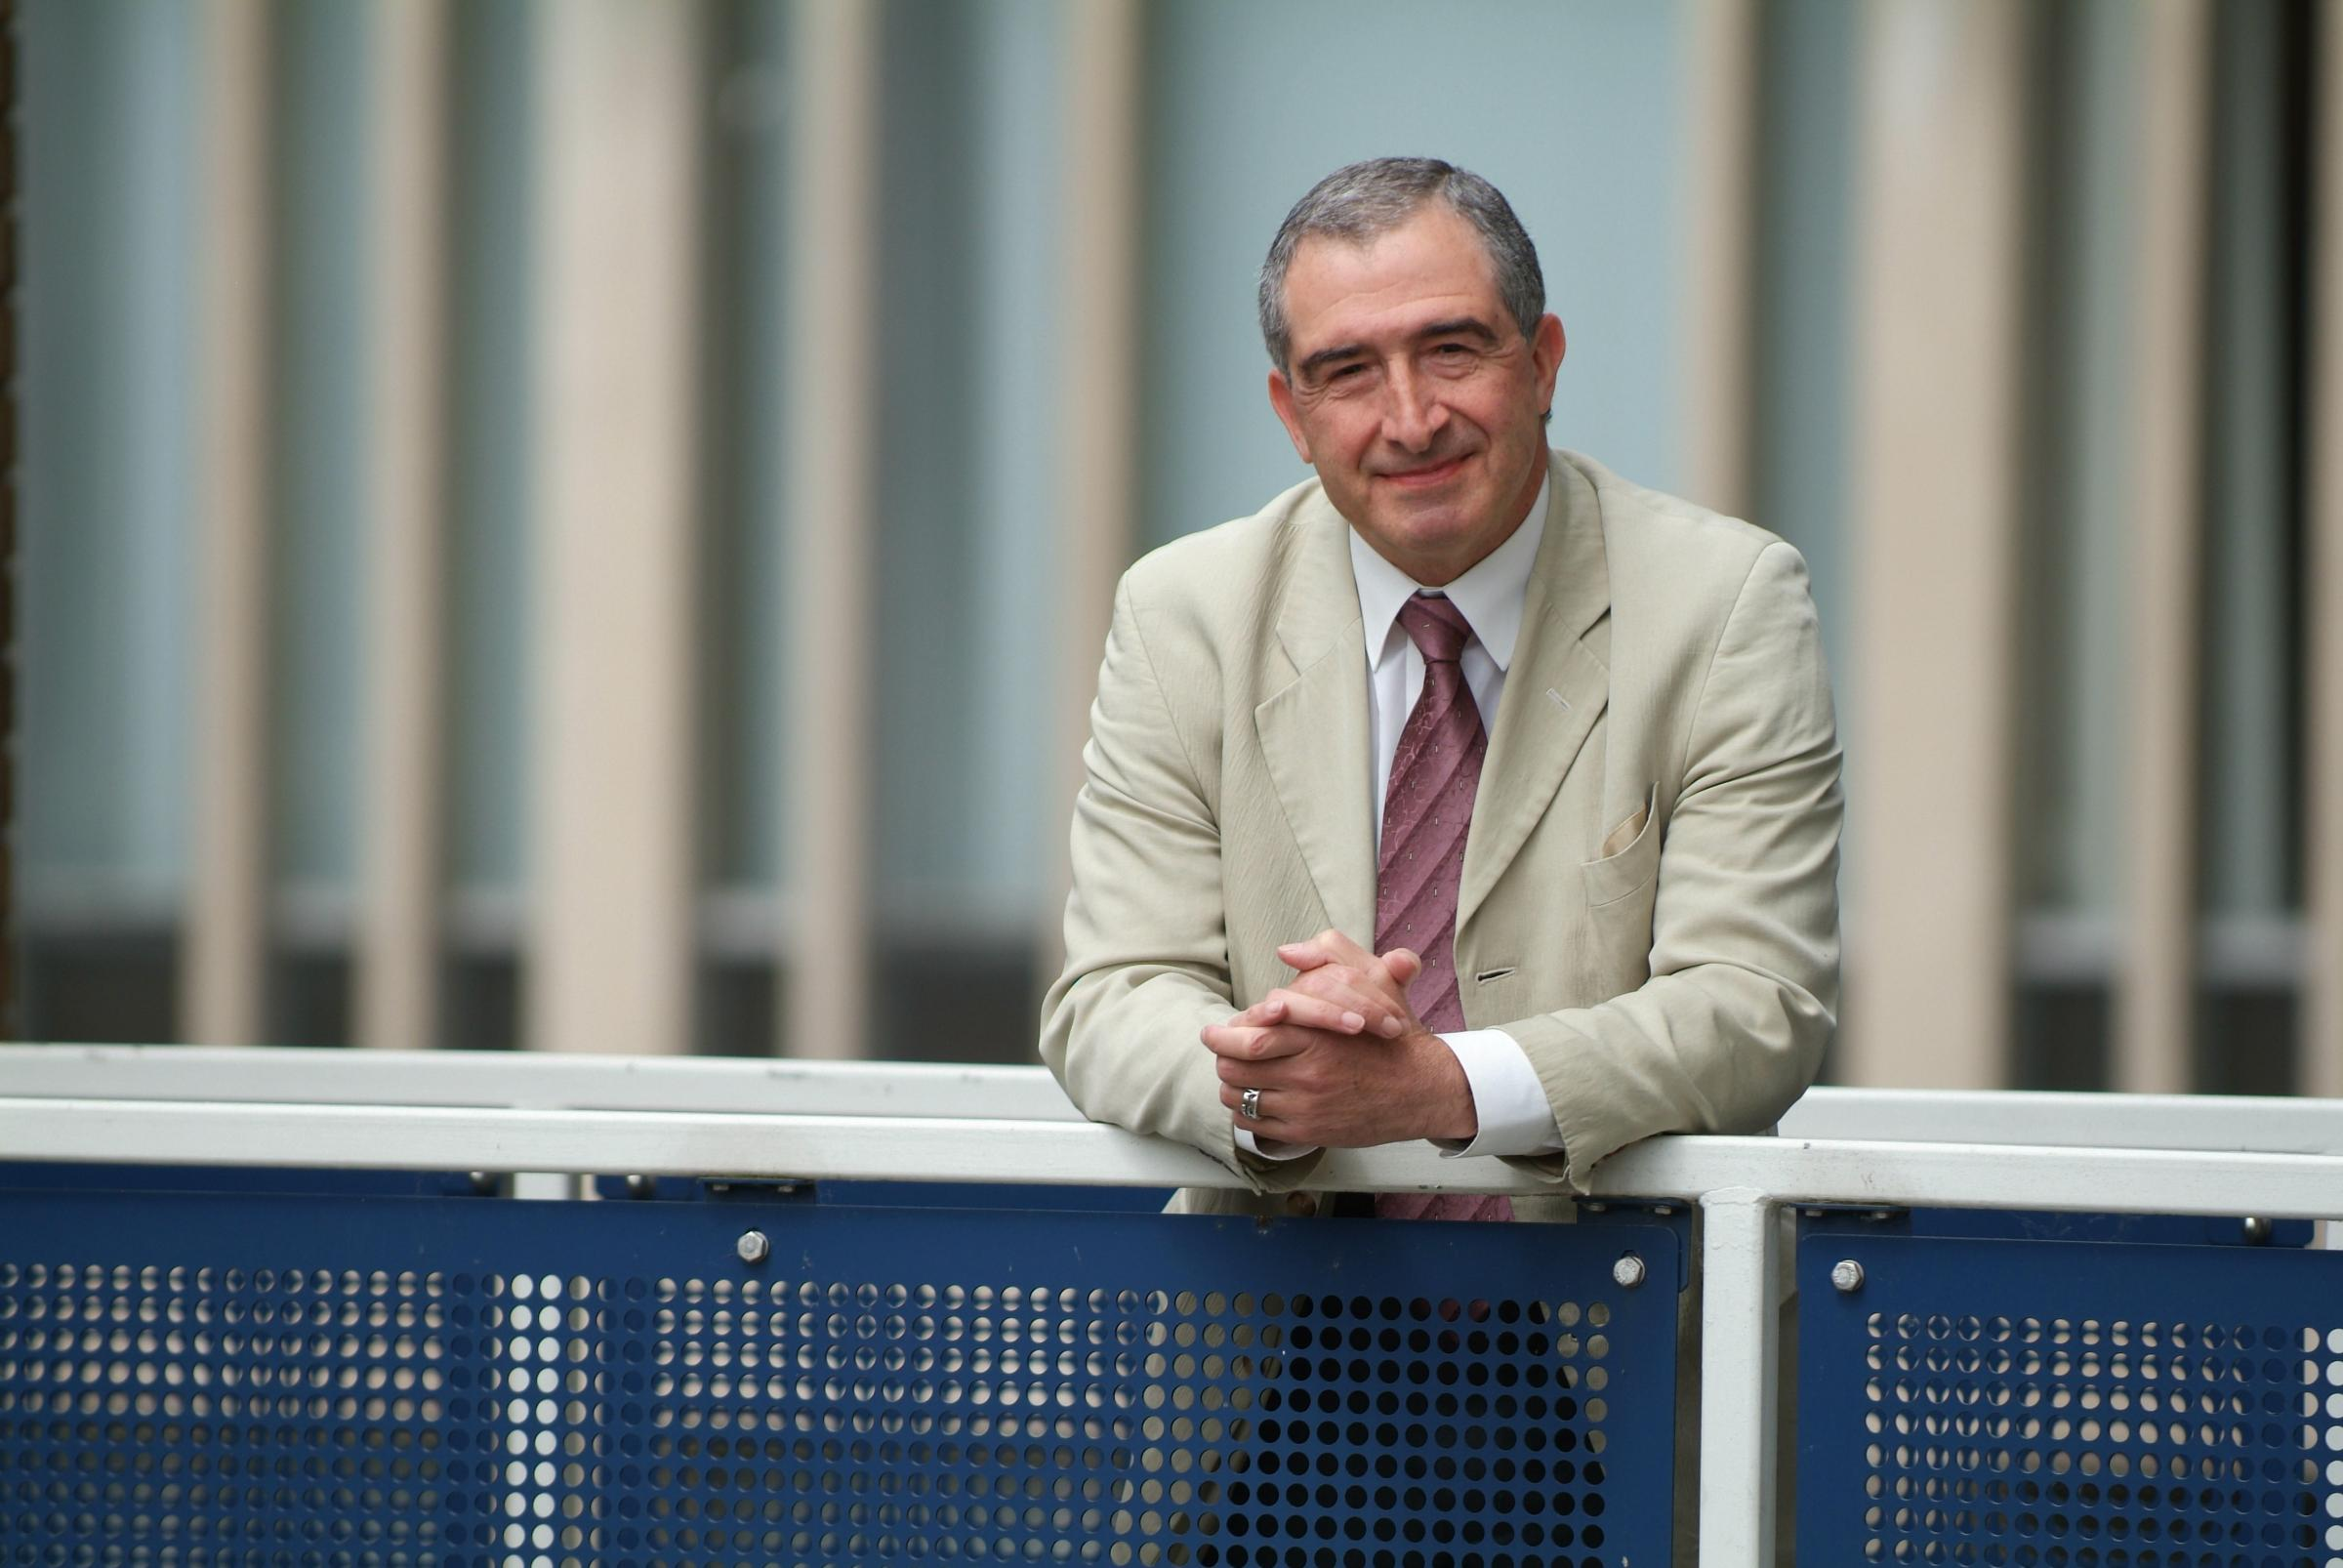 Prof Sir Nigel Rodley